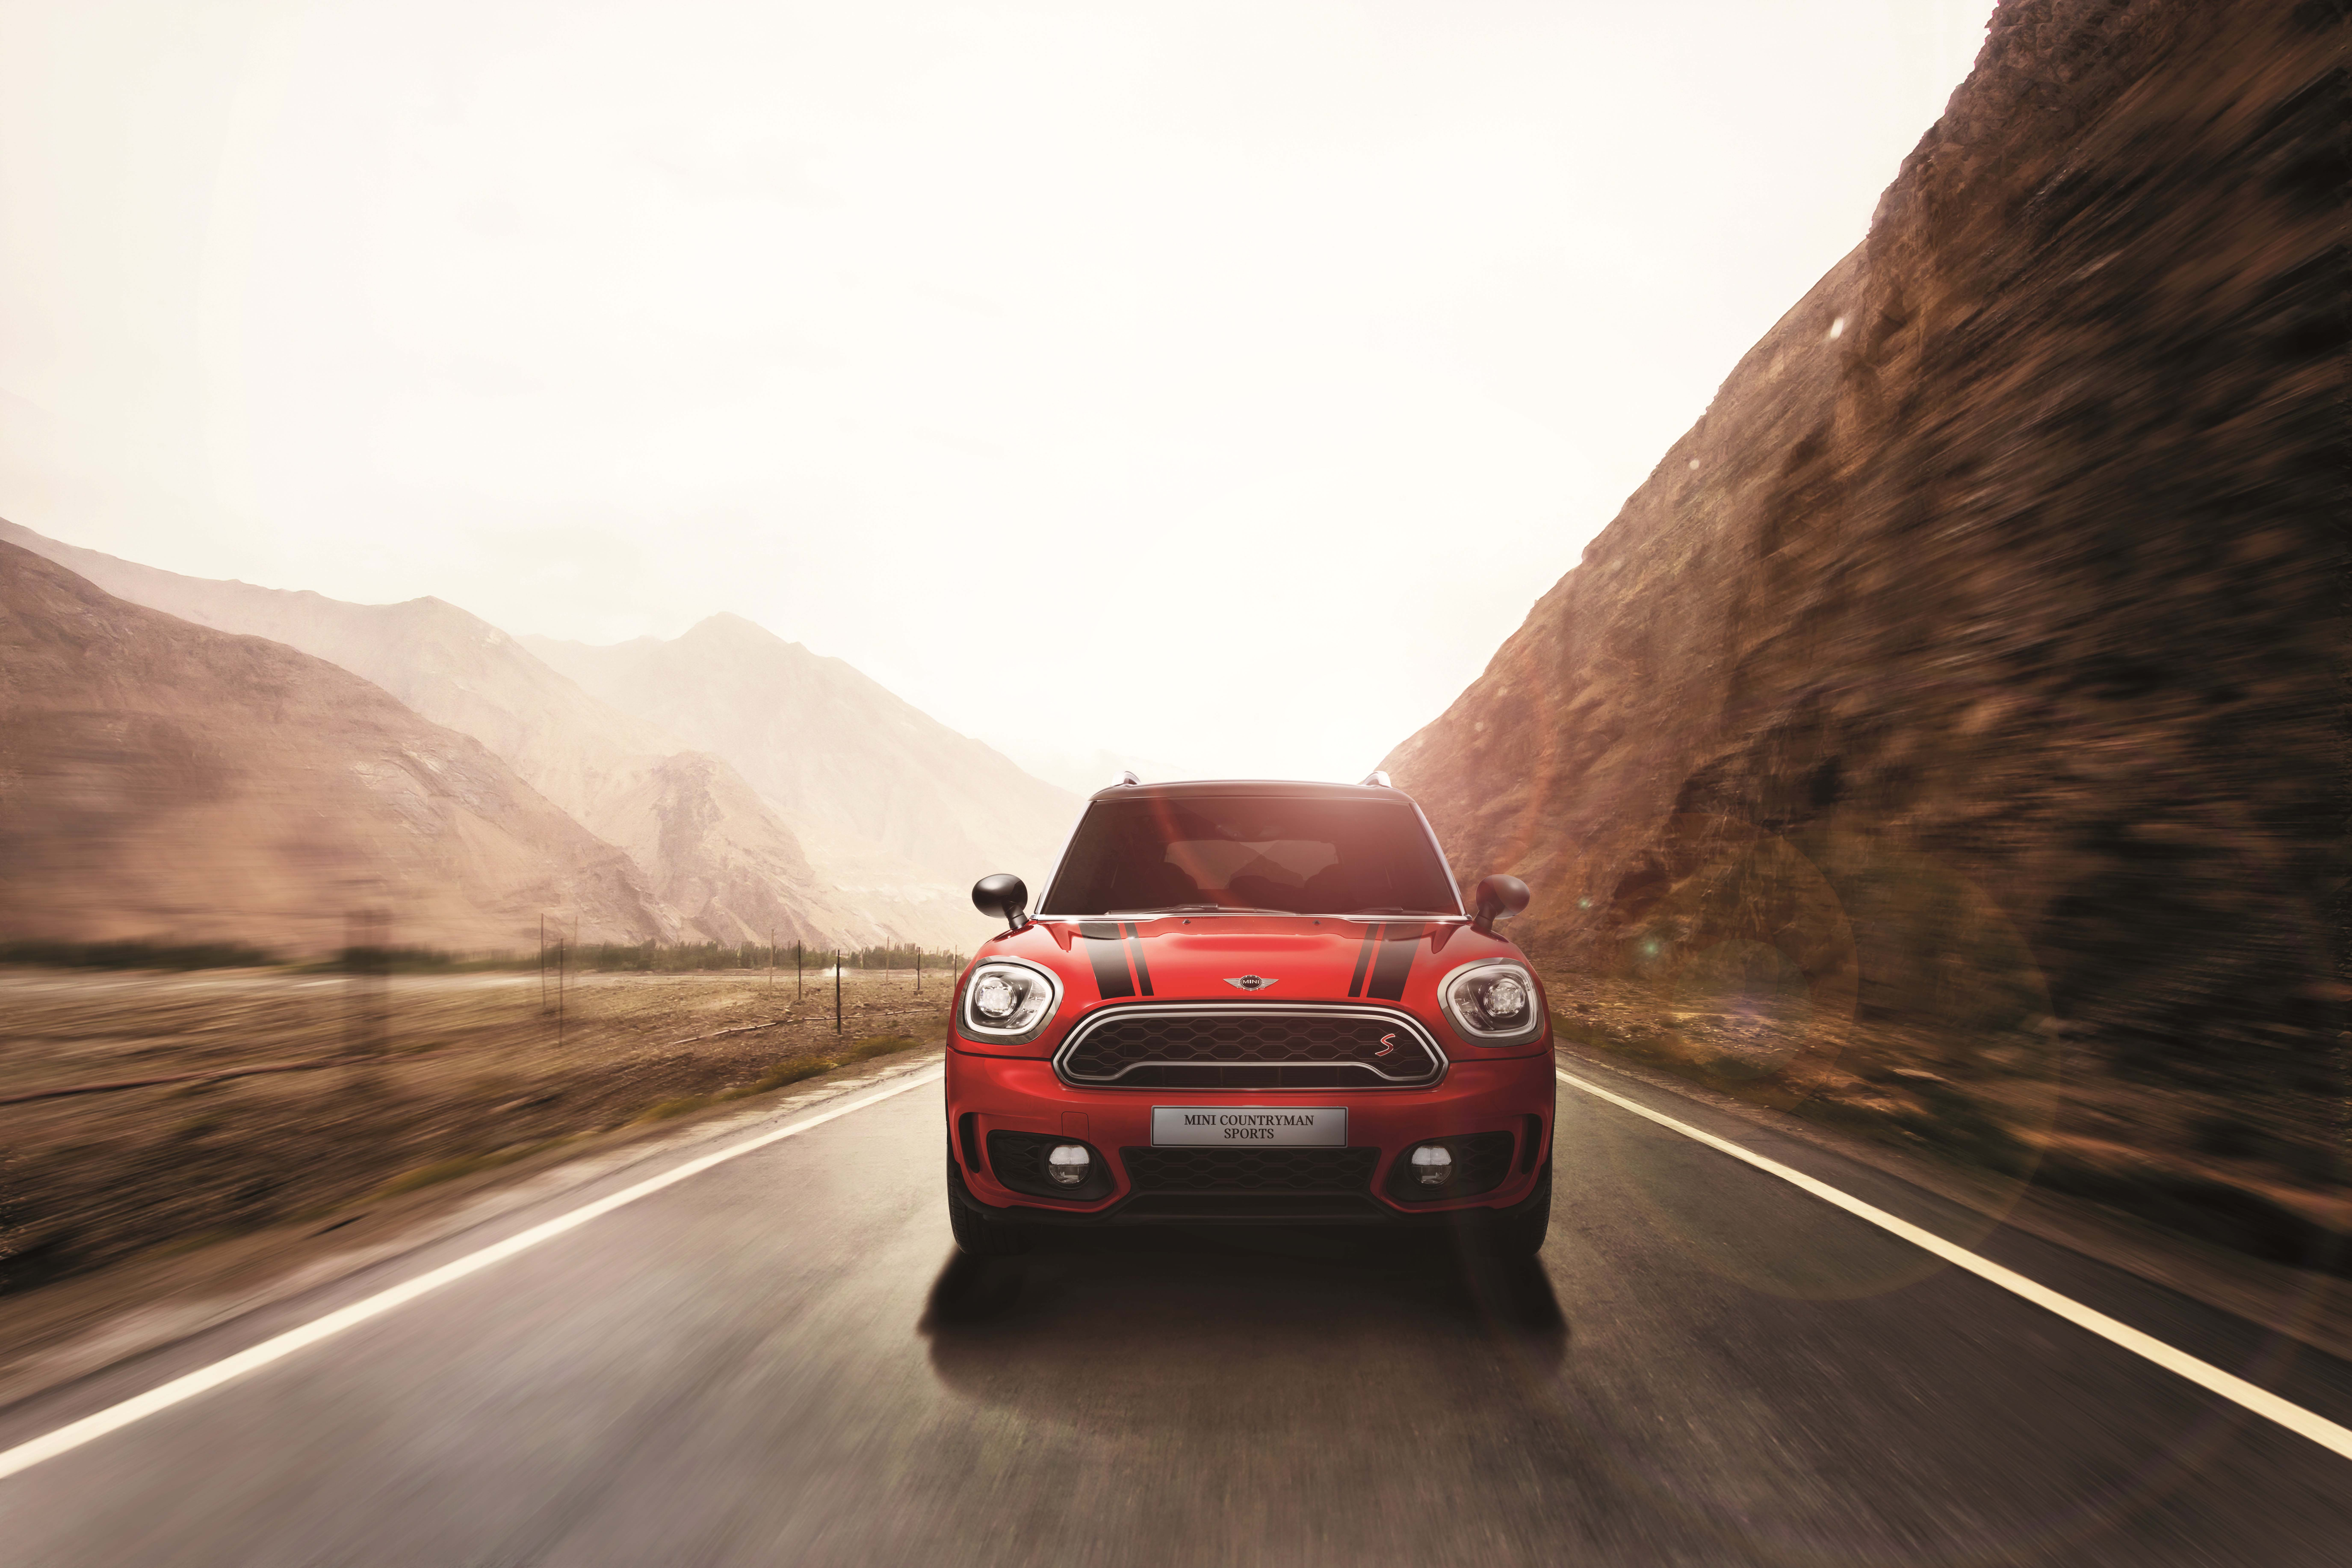 MINI Cooper S Countryman Sports launched – CKD, John Cooper Works aerokit and wheels, RM245,888 Image #803006